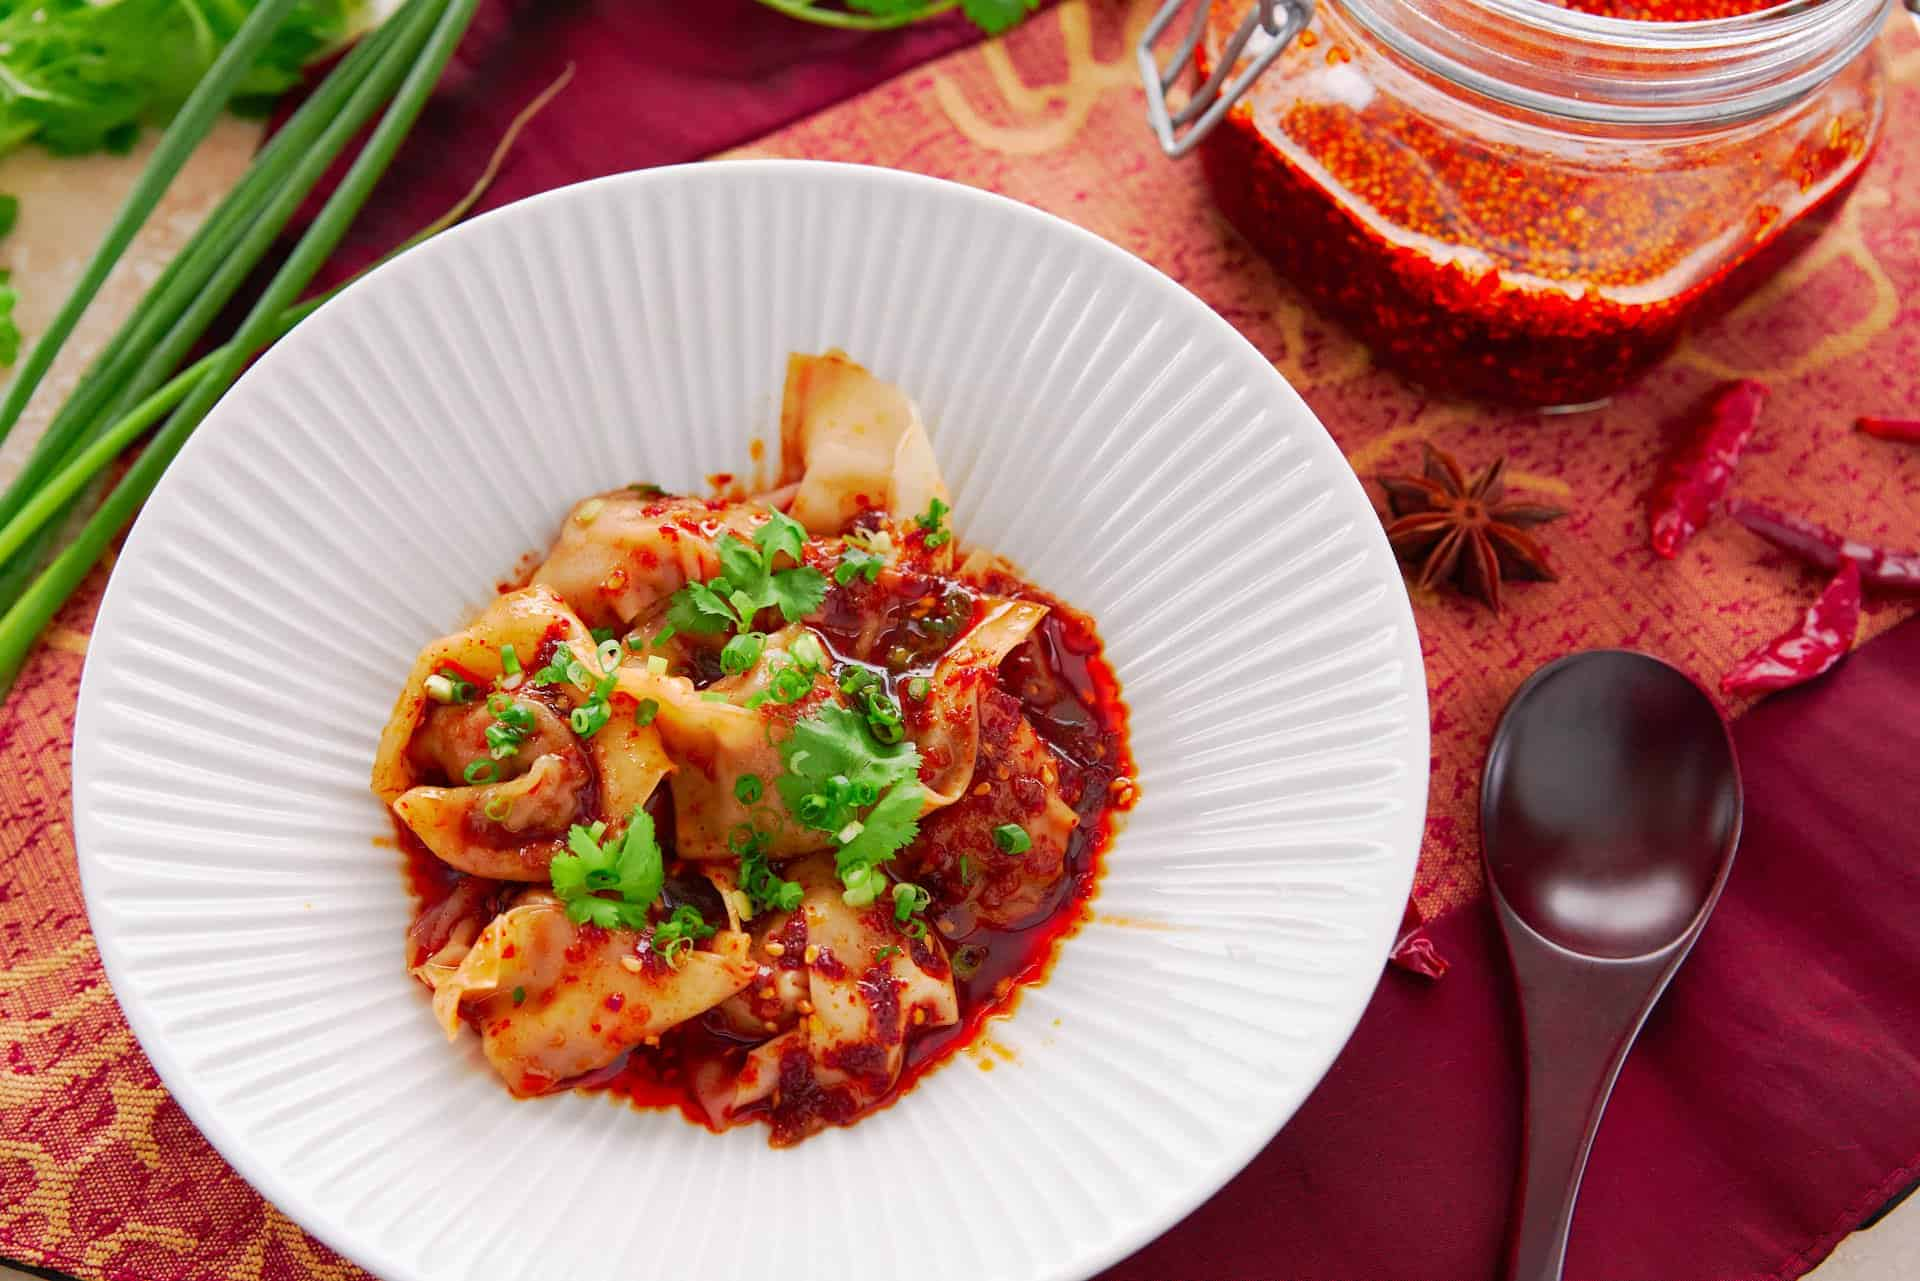 These spicy Sichuan-style wontons in fiery chili oil are easy to make and irresistibly good.